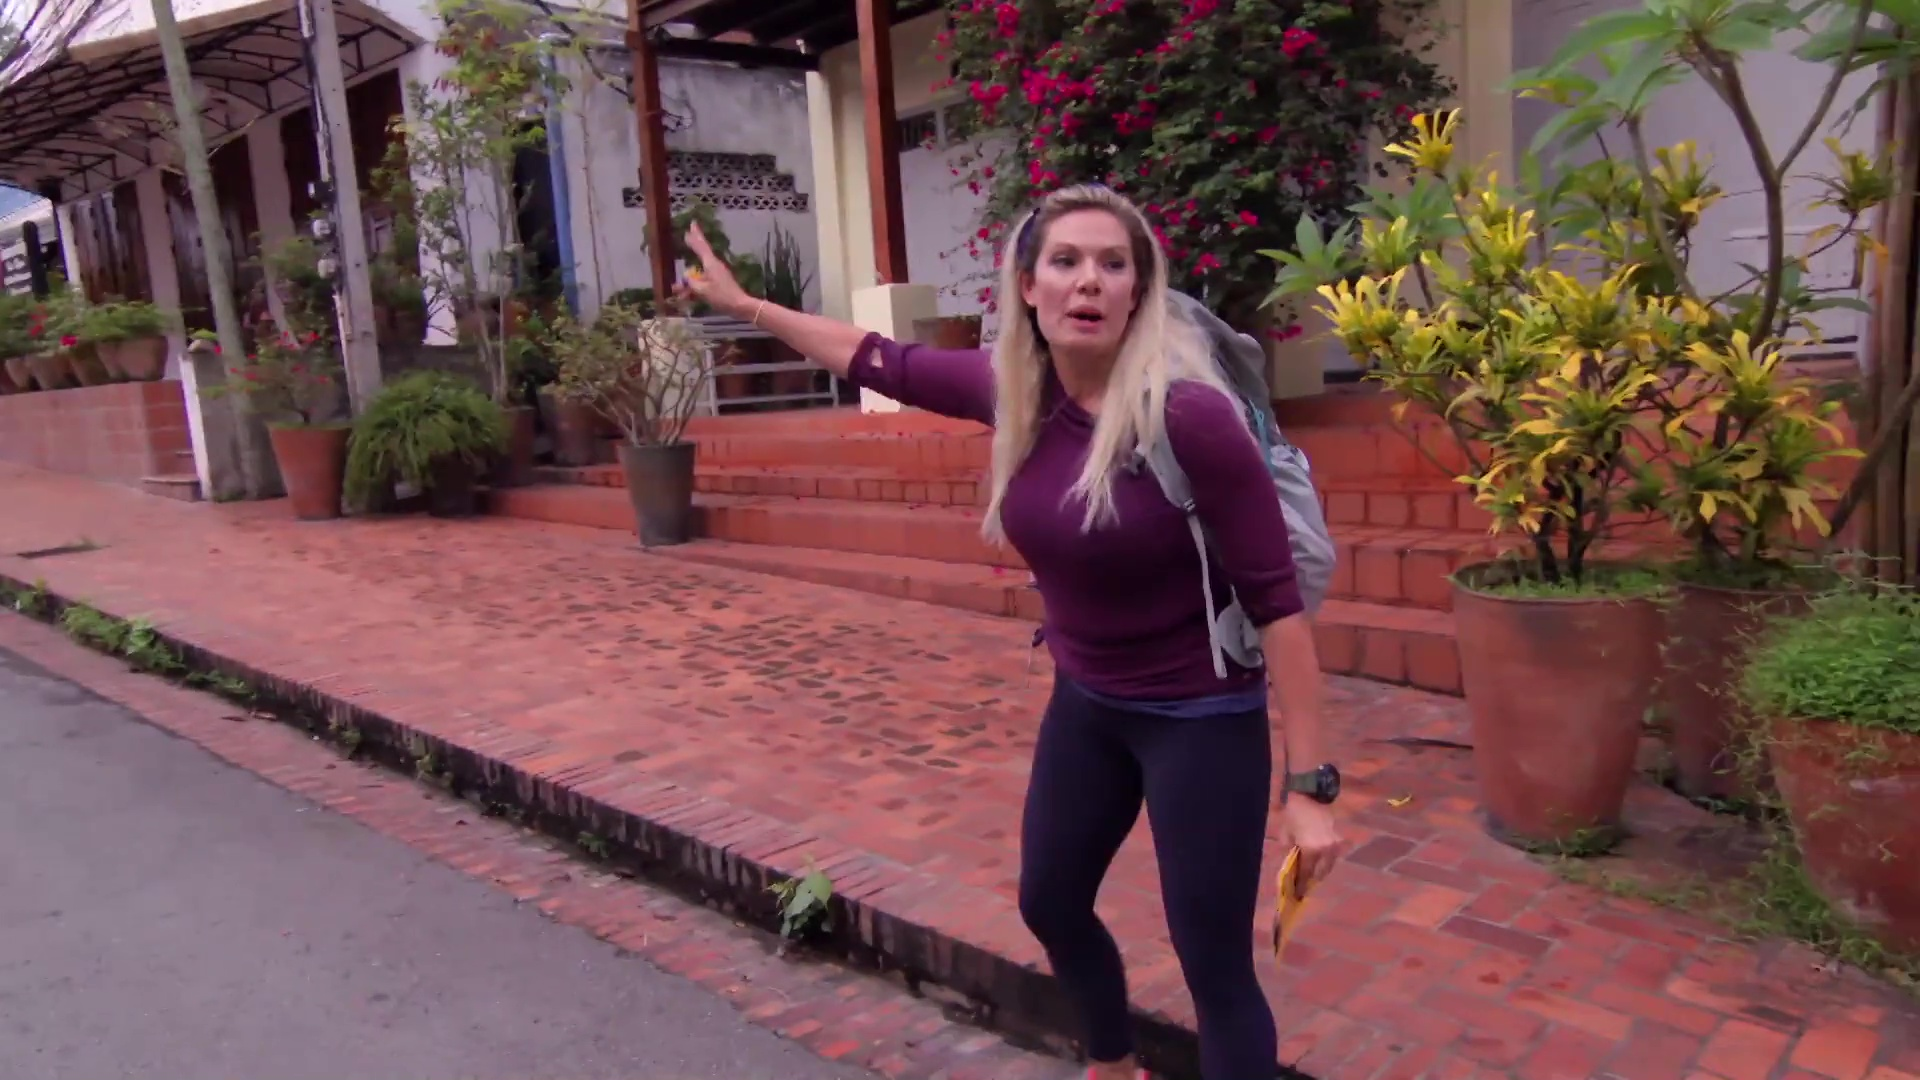 The Amazing Race 30 Episode 2